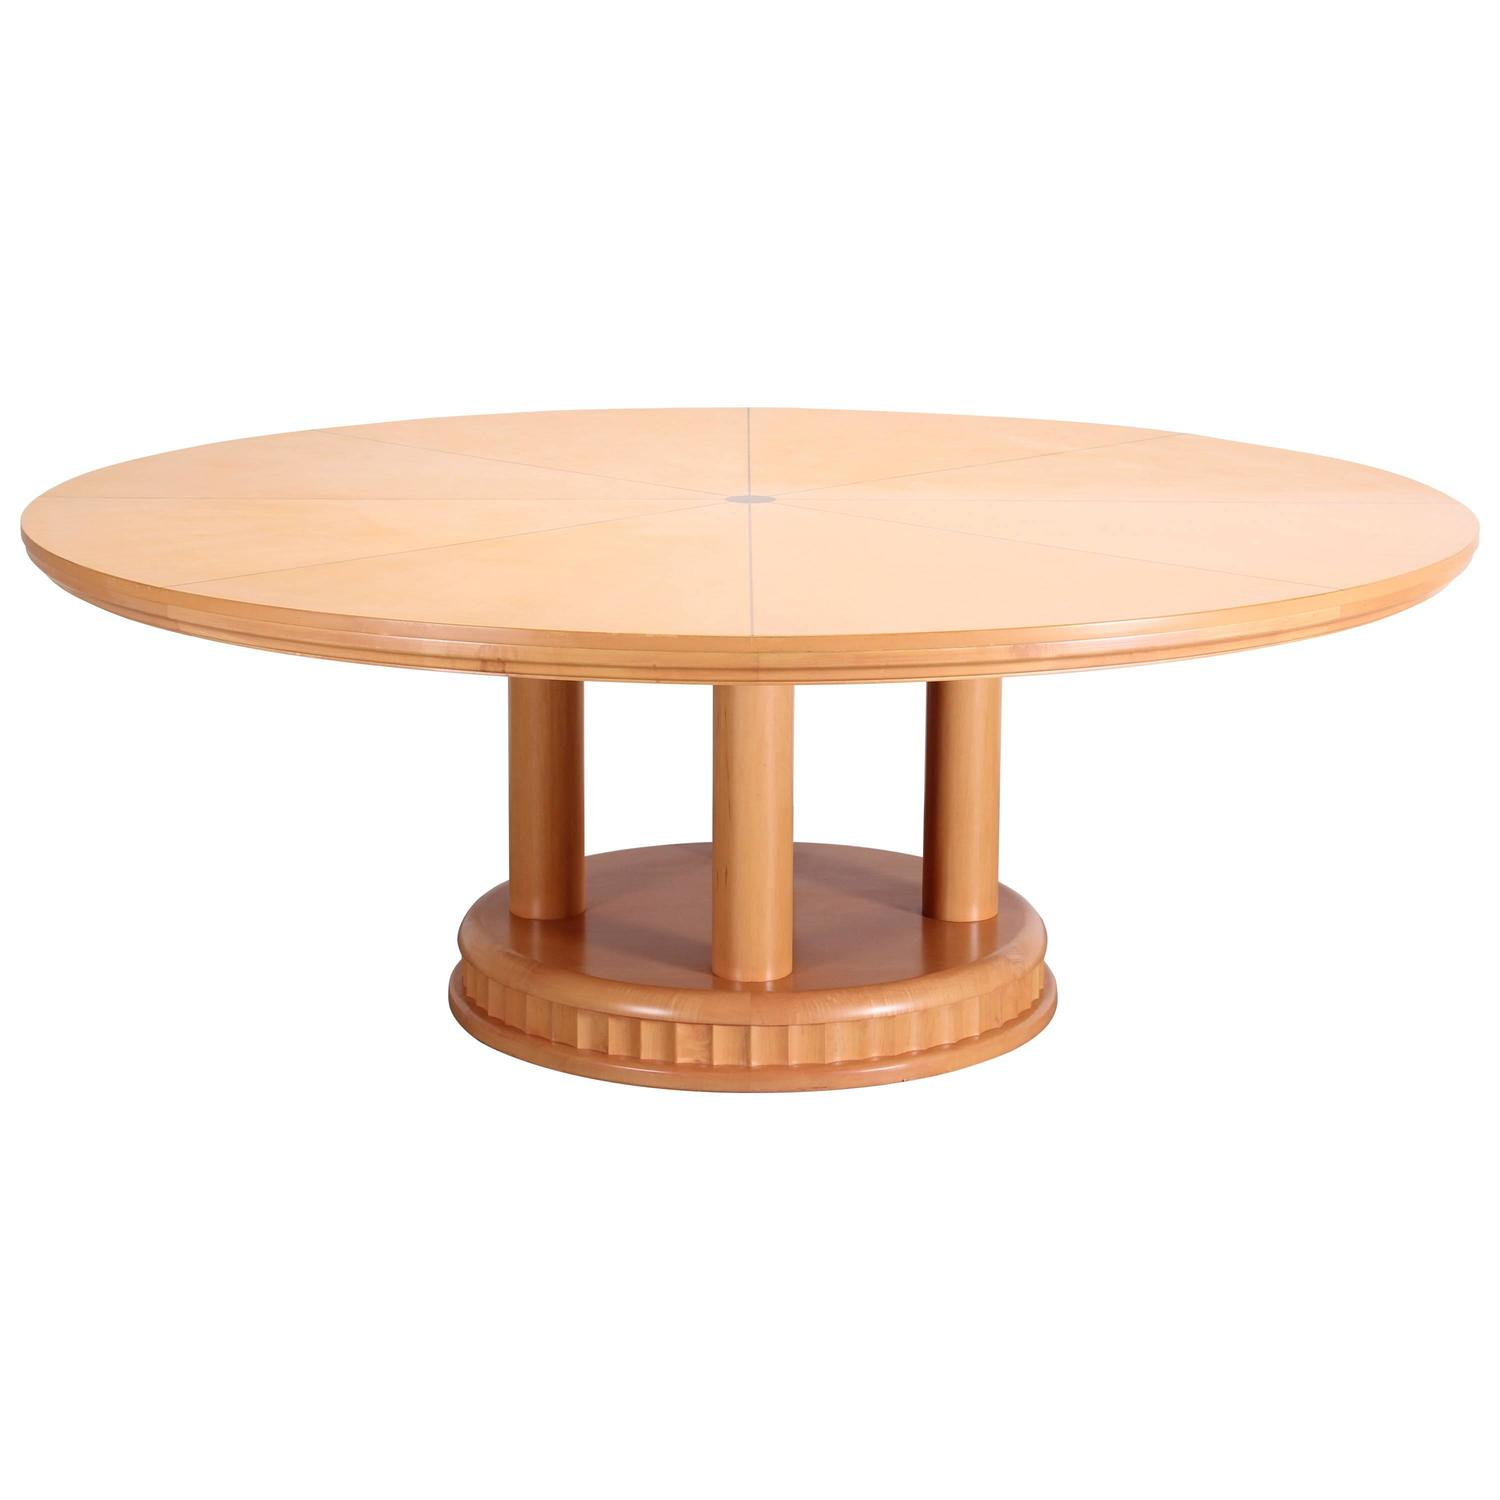 Custom contemporary biedermeier round dining table 2000 for Unique round dining tables